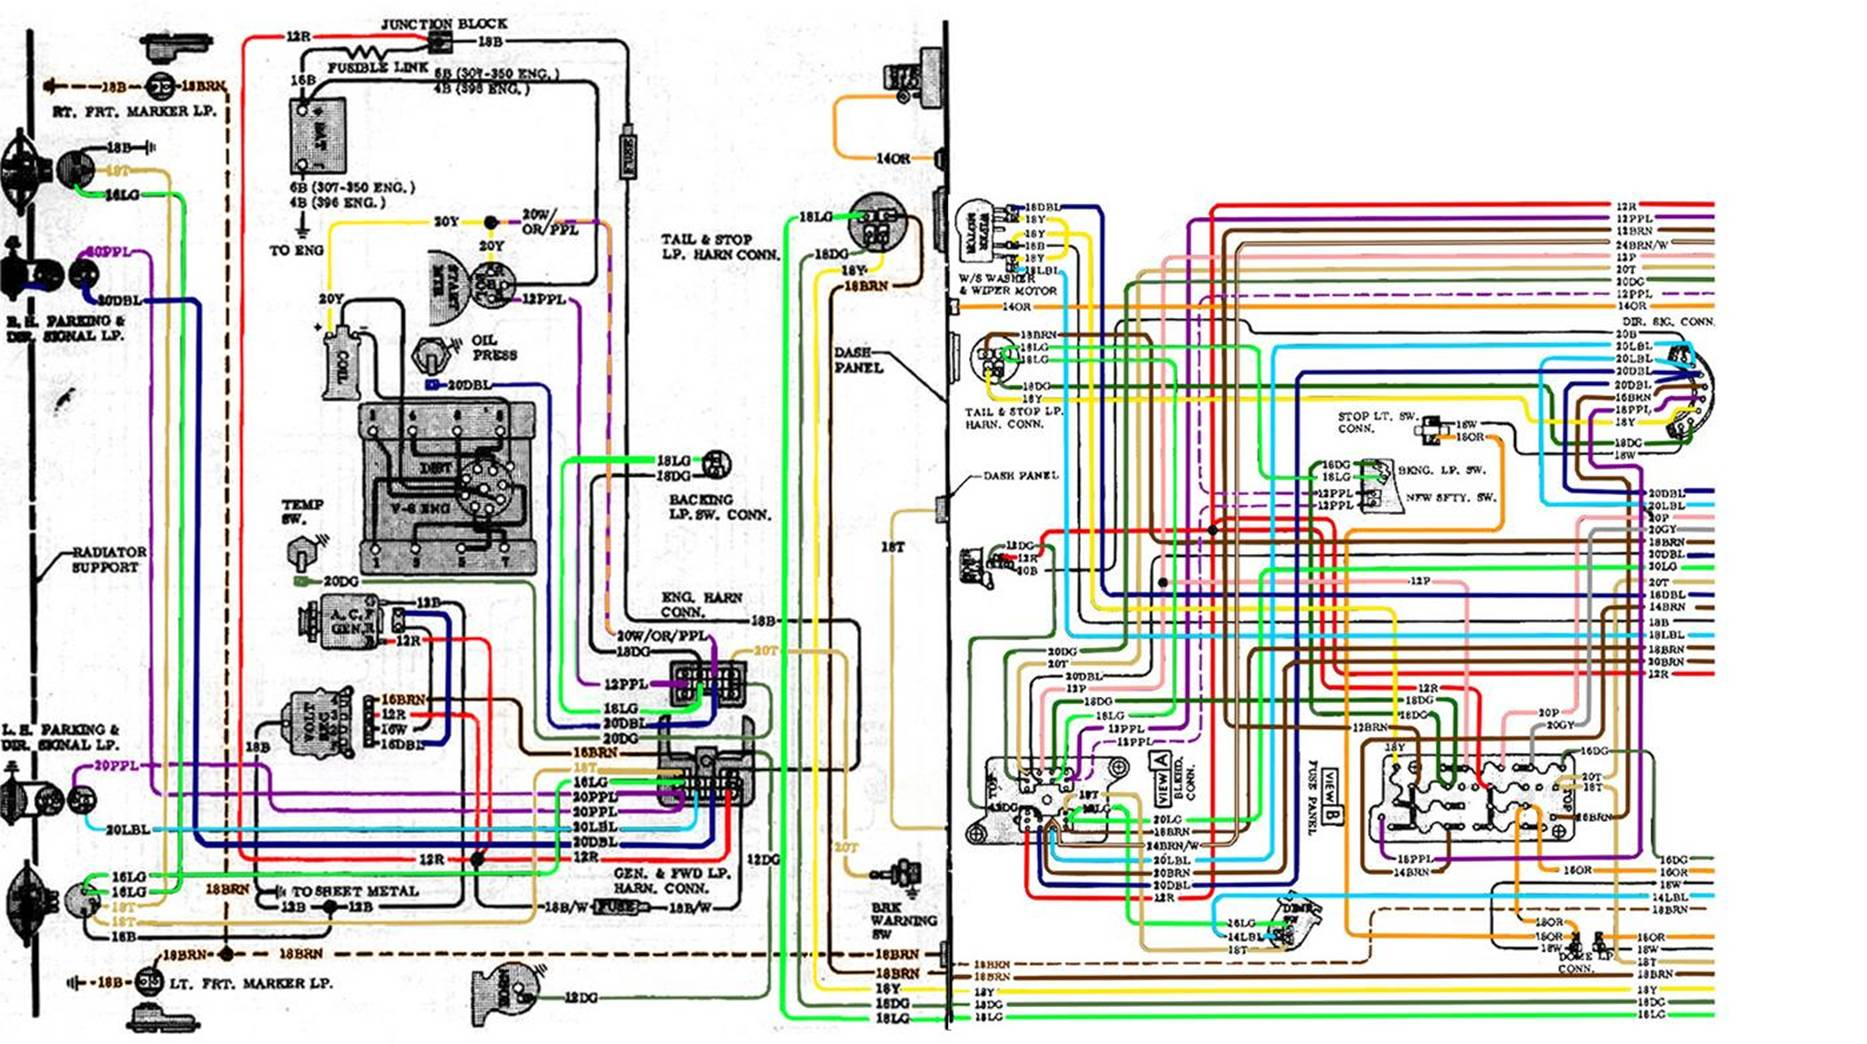 1970 Chevy Truck Wiring Harness Diagram 84 Silverado 67 72 Rh Outintheshop Com 1991 C1500